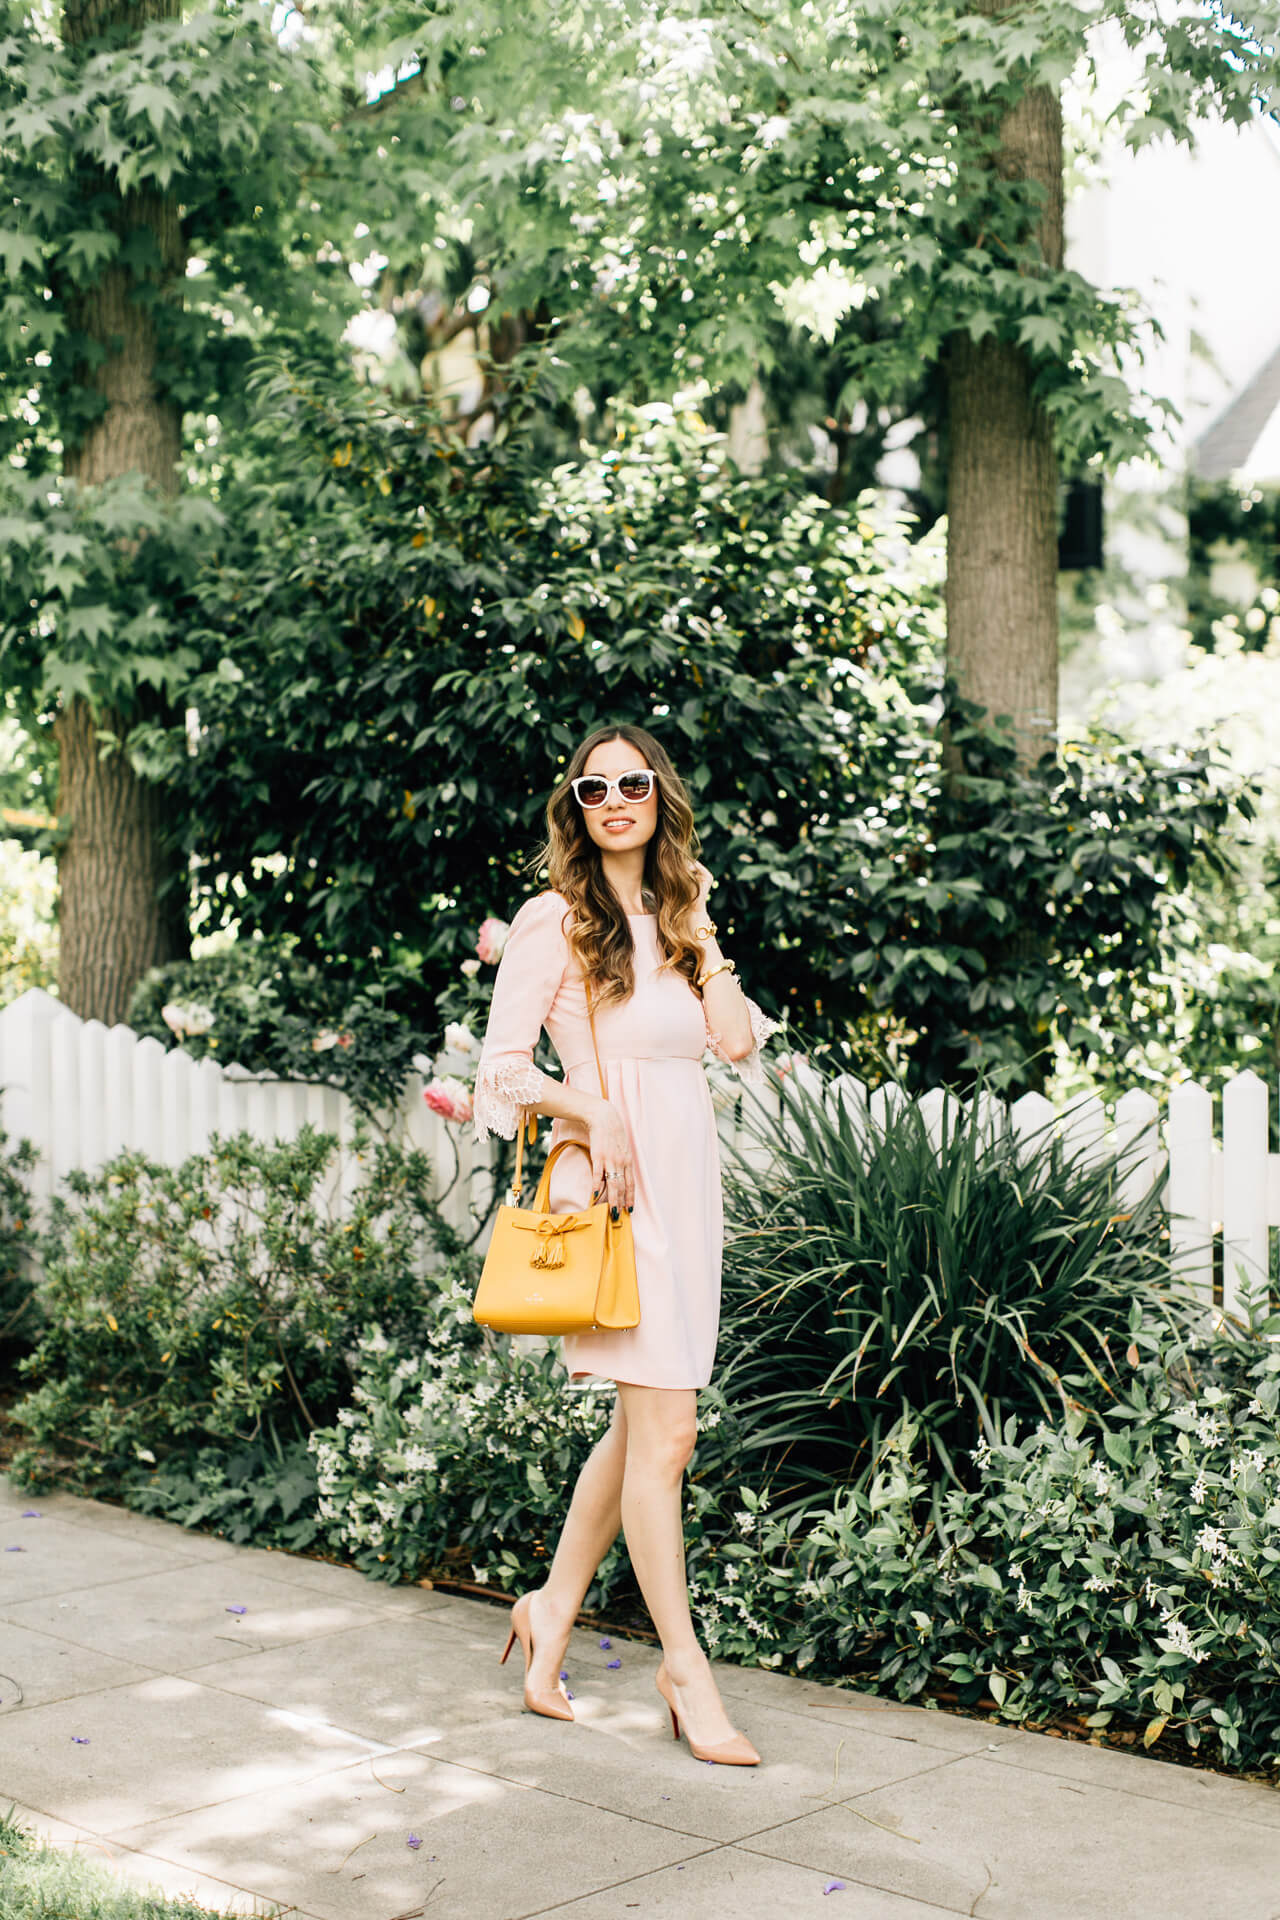 love this pink and mustard outfit inspiration for spring - so feminine!